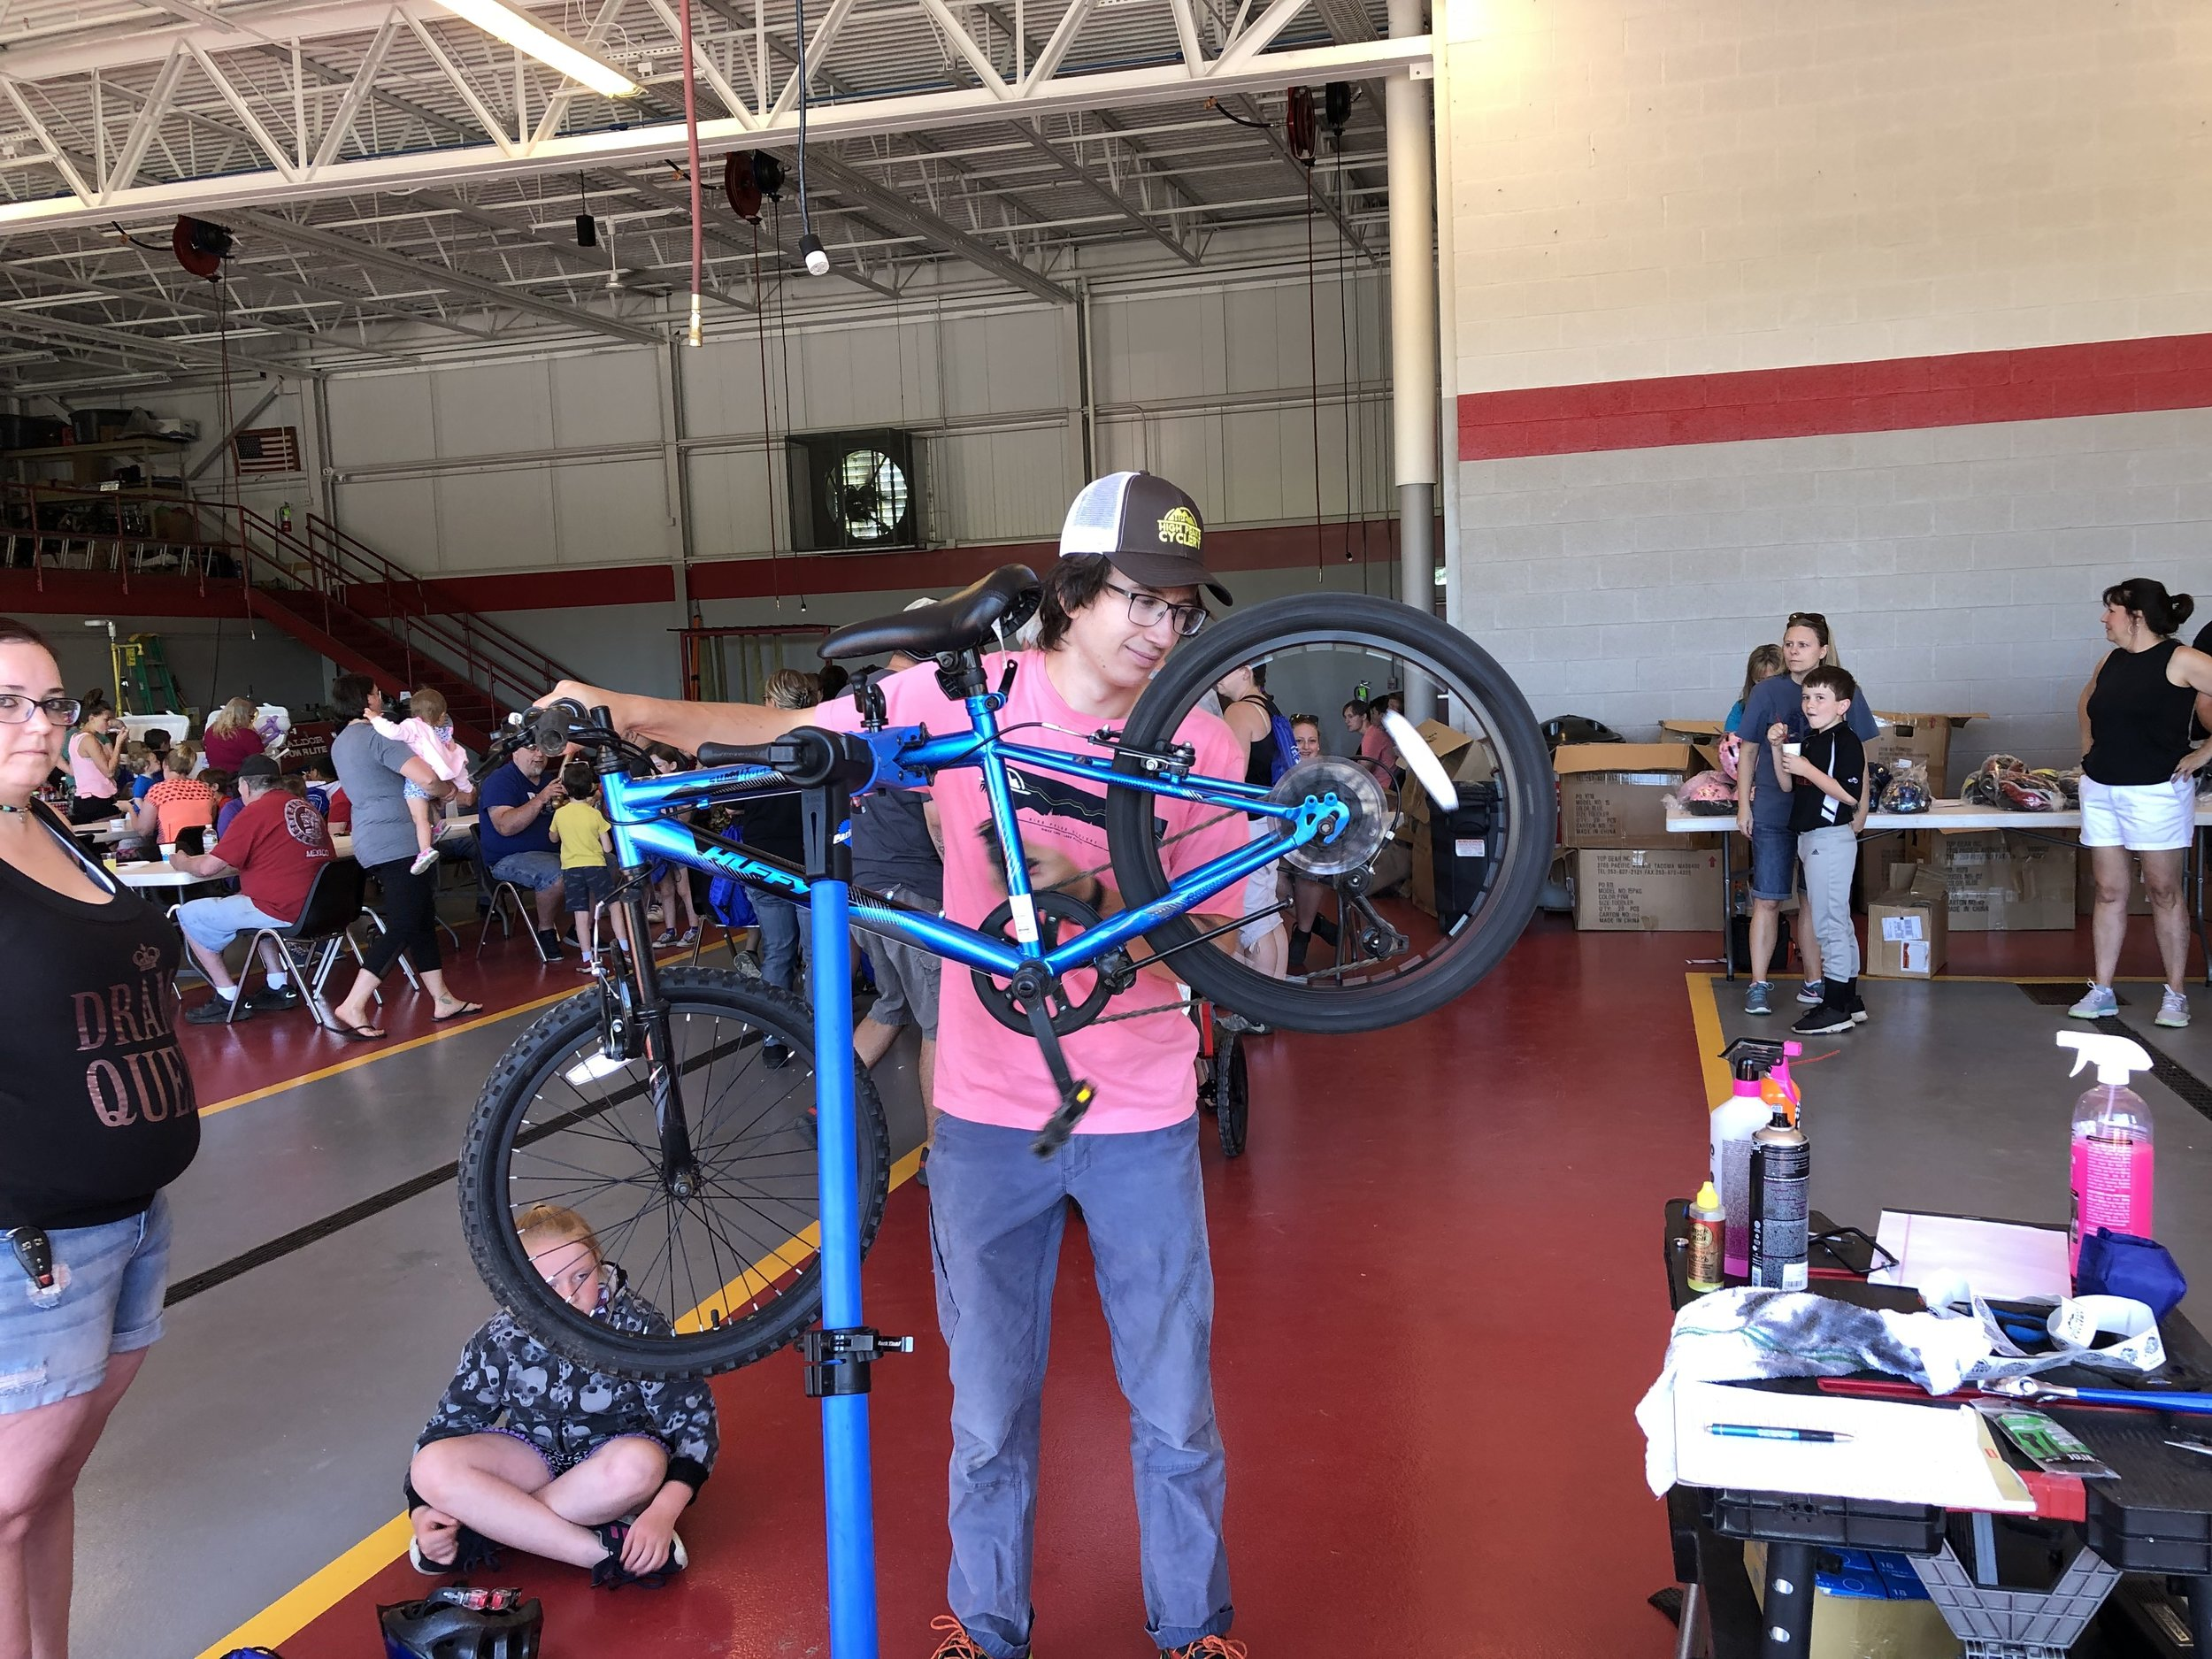 Ben Thompson of High Peaks Cyclery was one of two technicians provided by the Lake Placid-based bike shop to do adjustments and tune-ups for any of the young riders who asked at Saturday's very successful Bike Rodeo and Celebration of Youth.